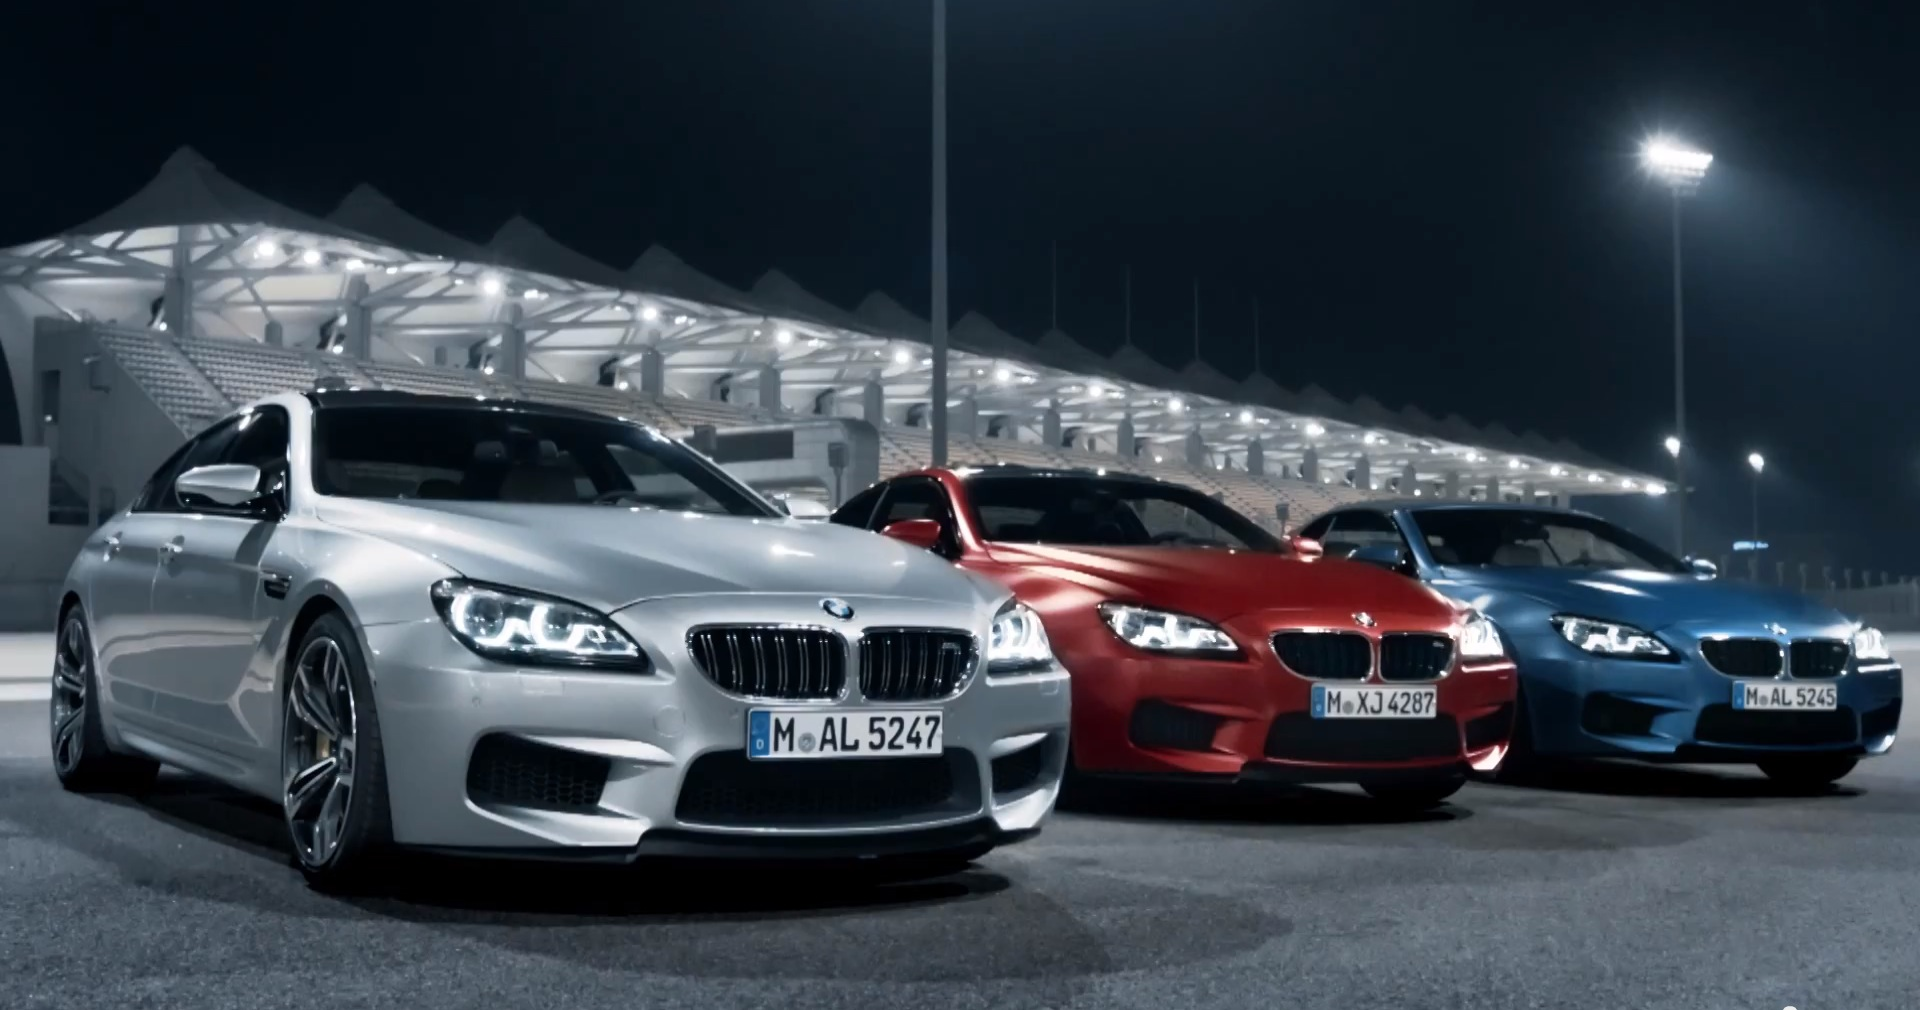 2015 bmw m6 lci models make exciting video debut autoevolution. Black Bedroom Furniture Sets. Home Design Ideas